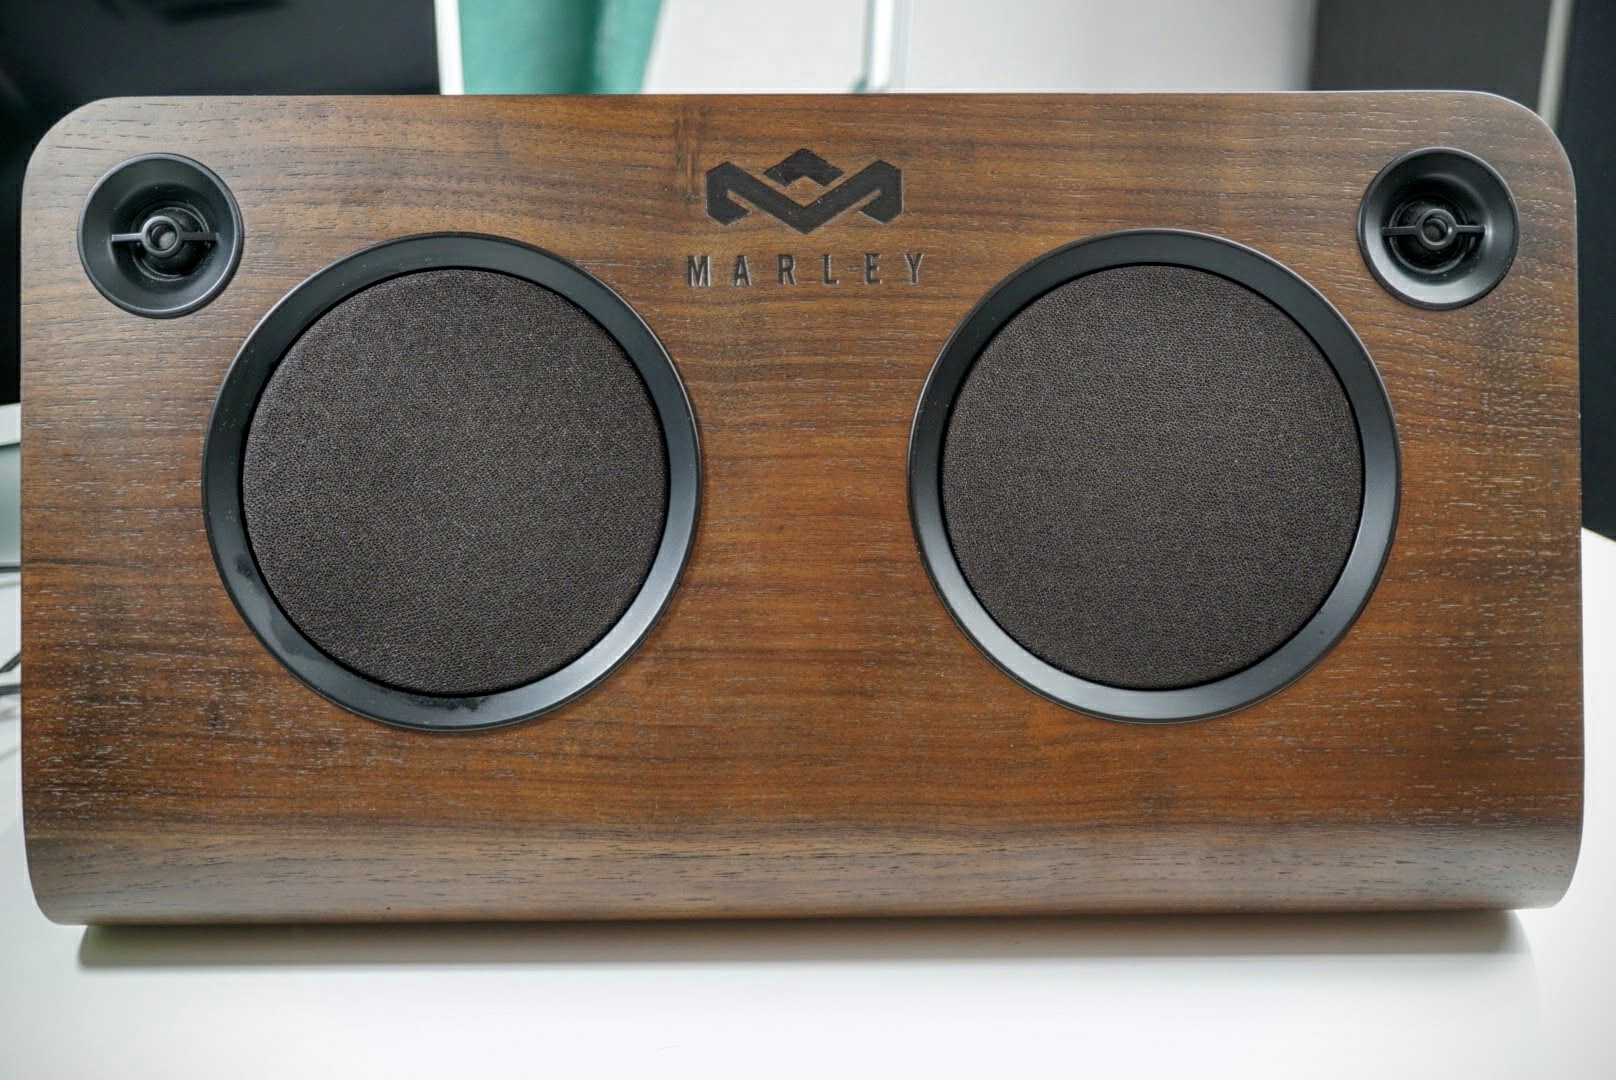 House of Marley Get Up Stand Up Bluetooth Speaker: Cutting edge